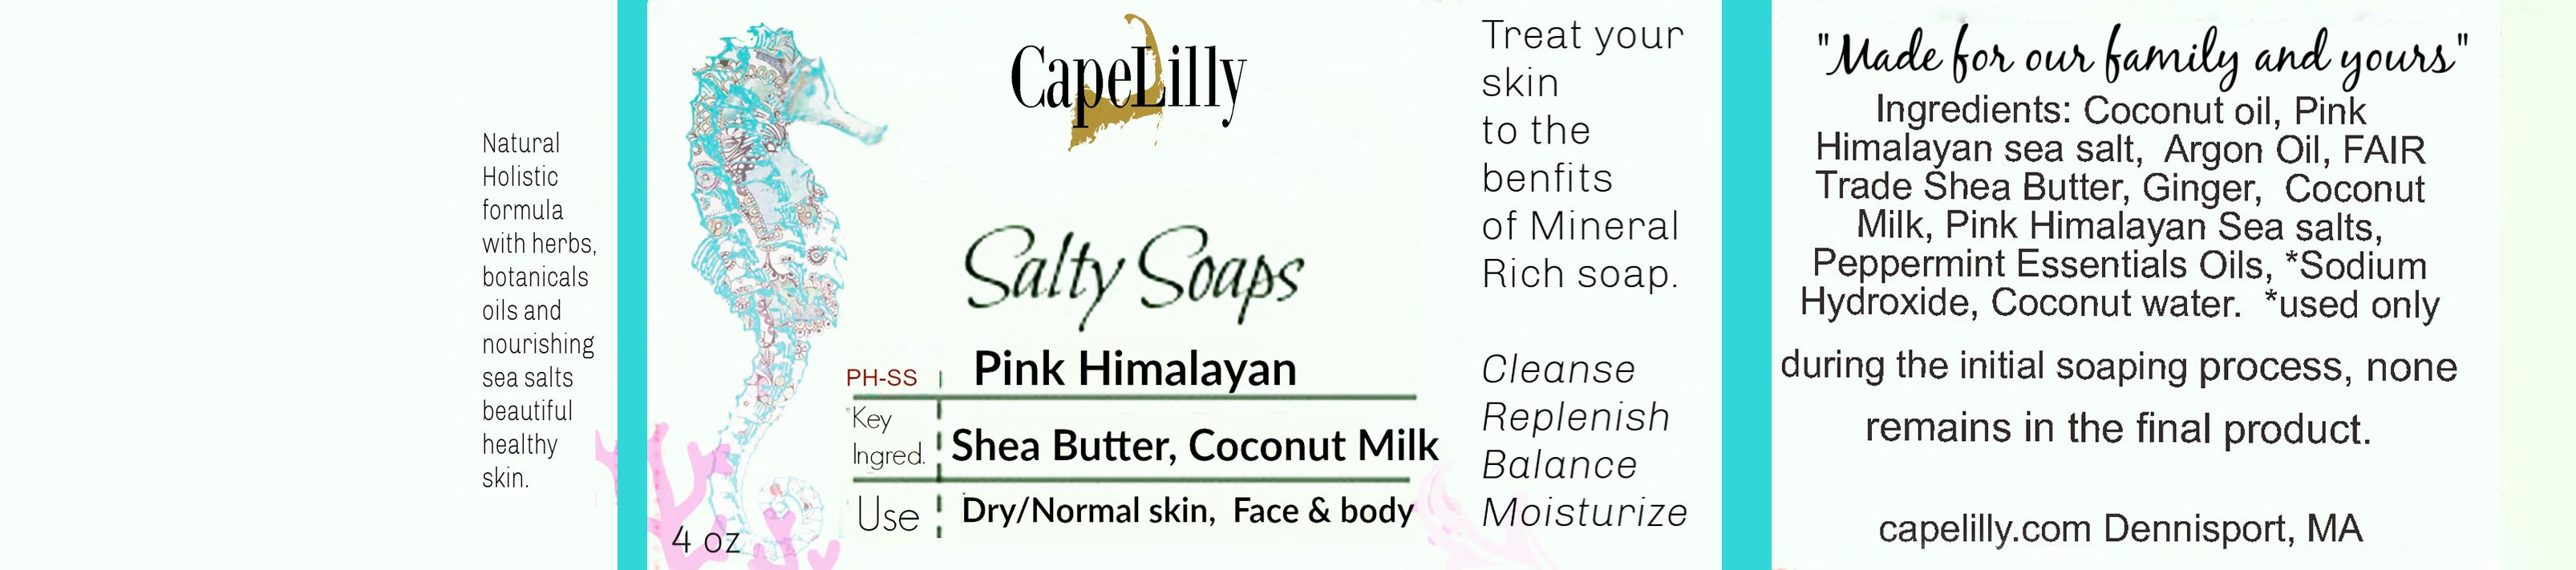 Pink Himalayan sole soap, 100% natural